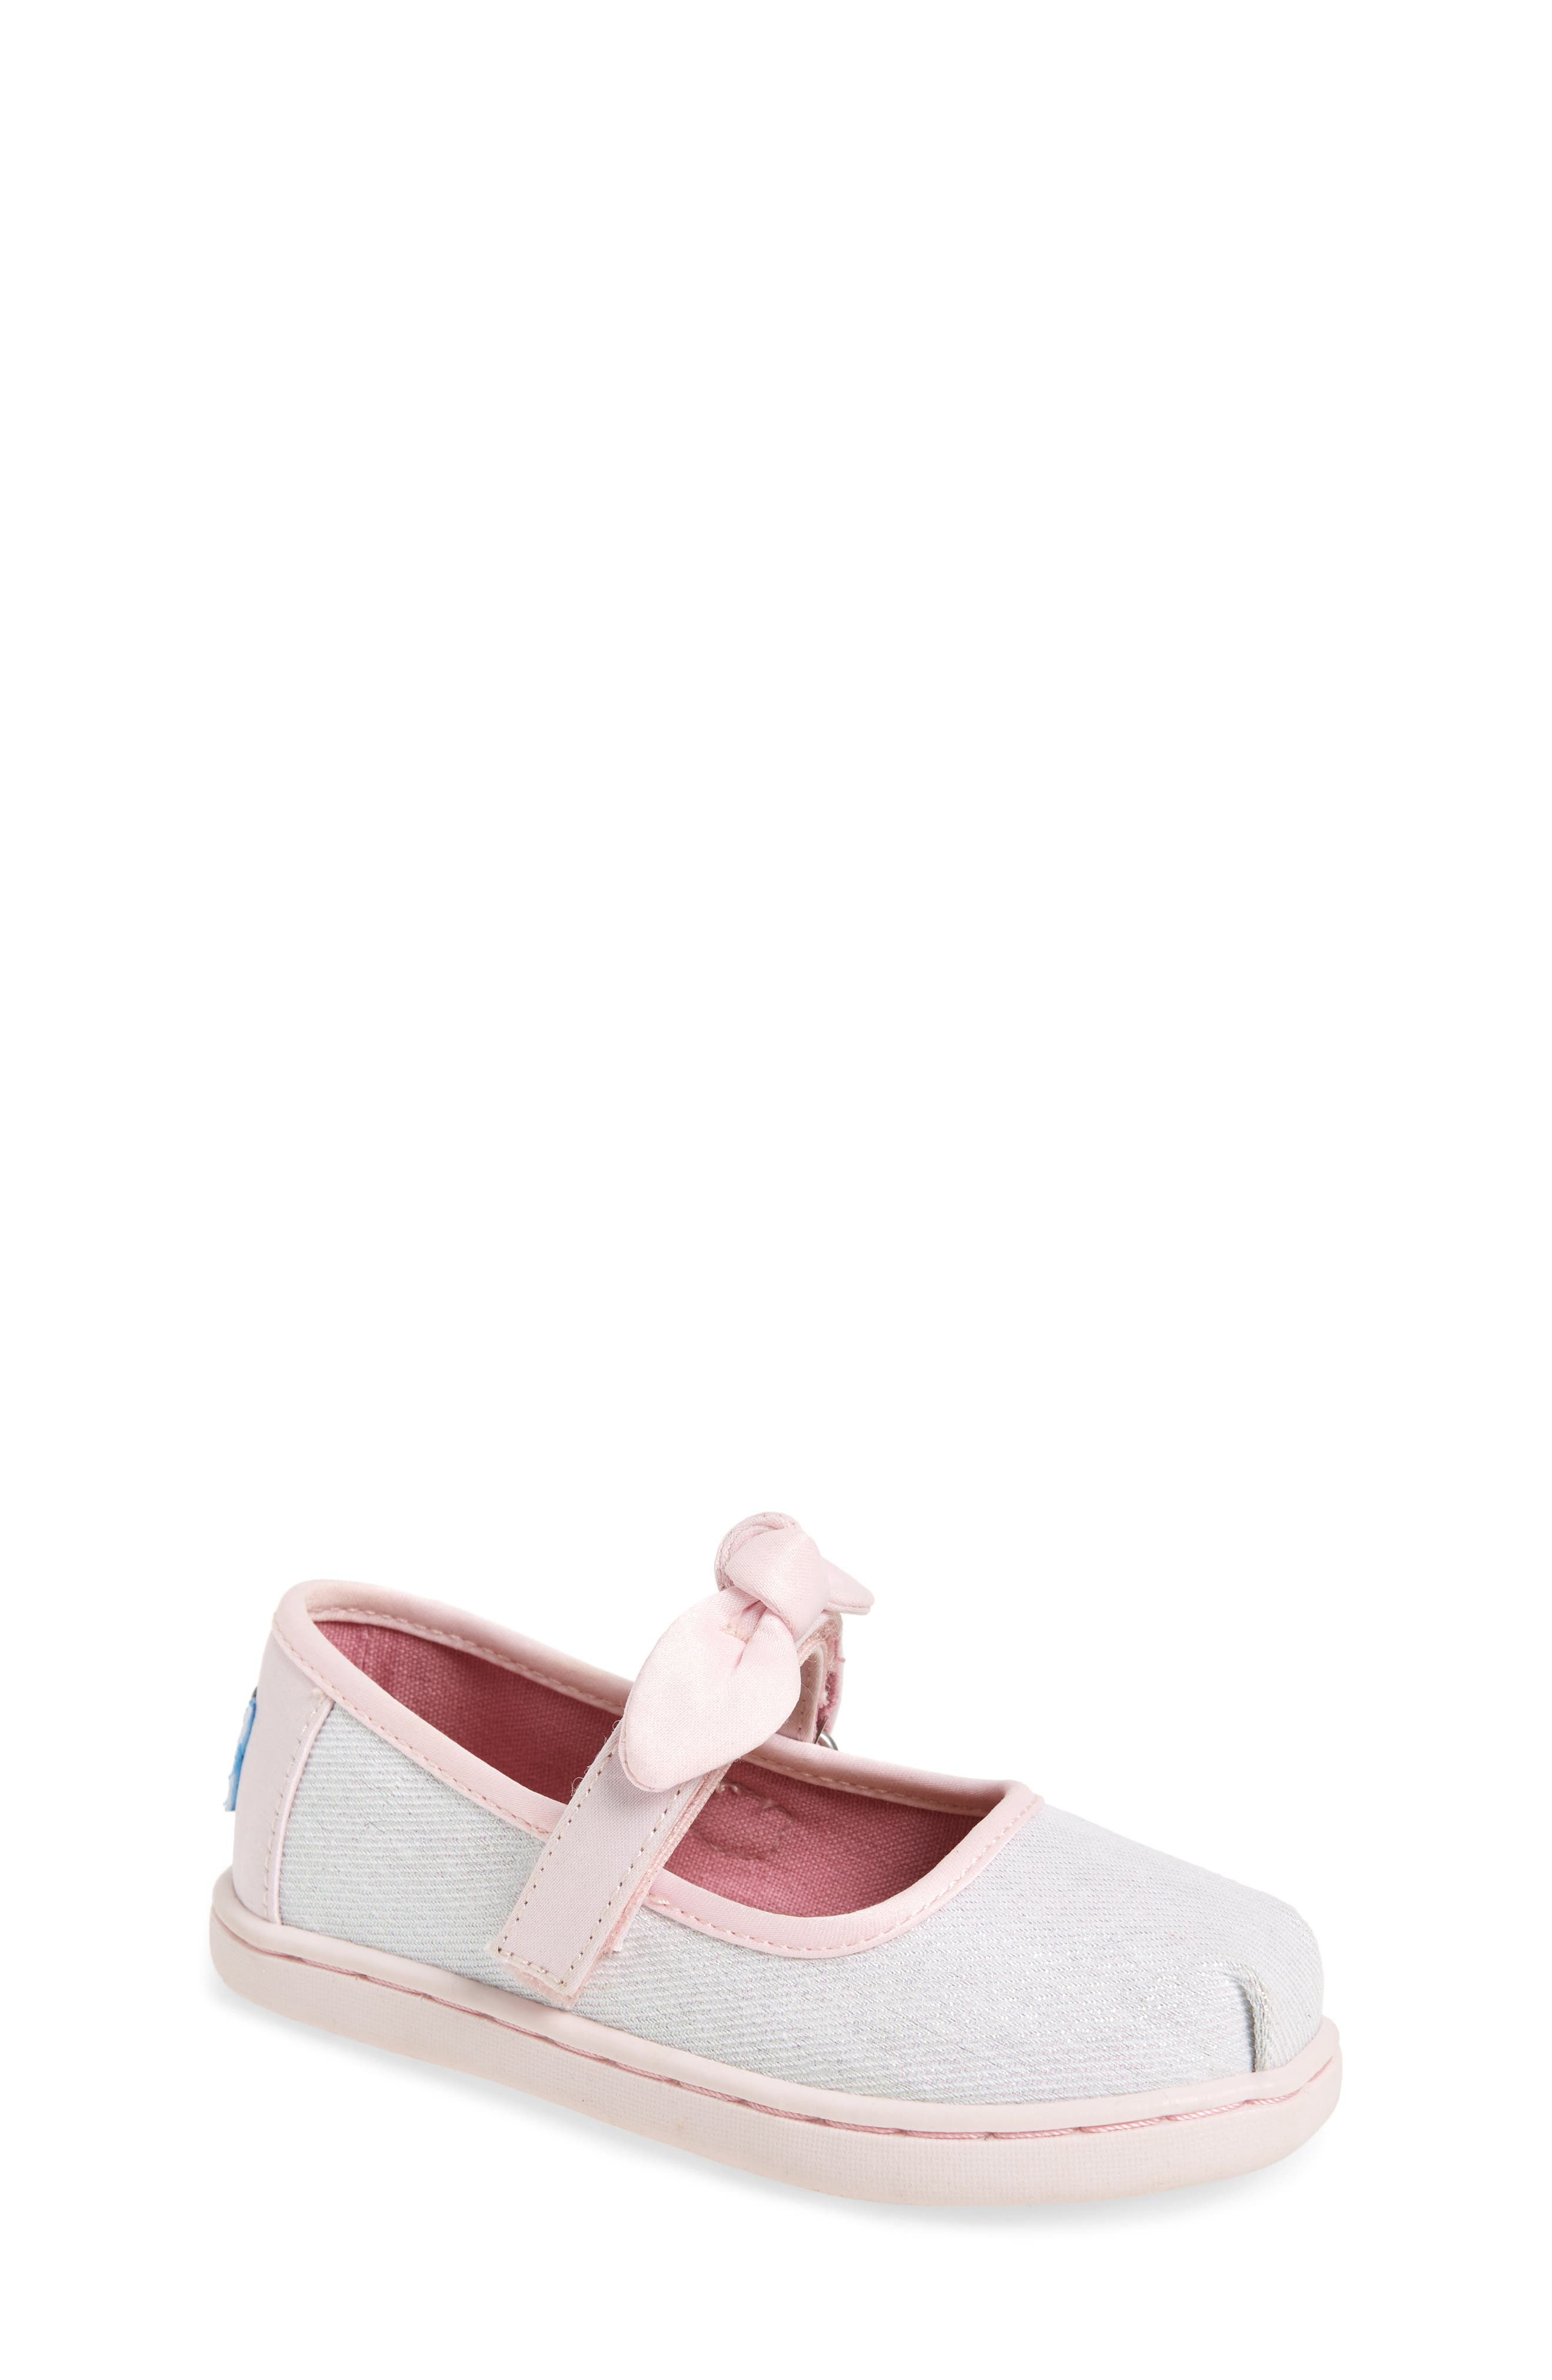 Bow Metallic Mary Jane Sneaker,                             Main thumbnail 1, color,                             IRIDESCENT TWILL GLIMMER